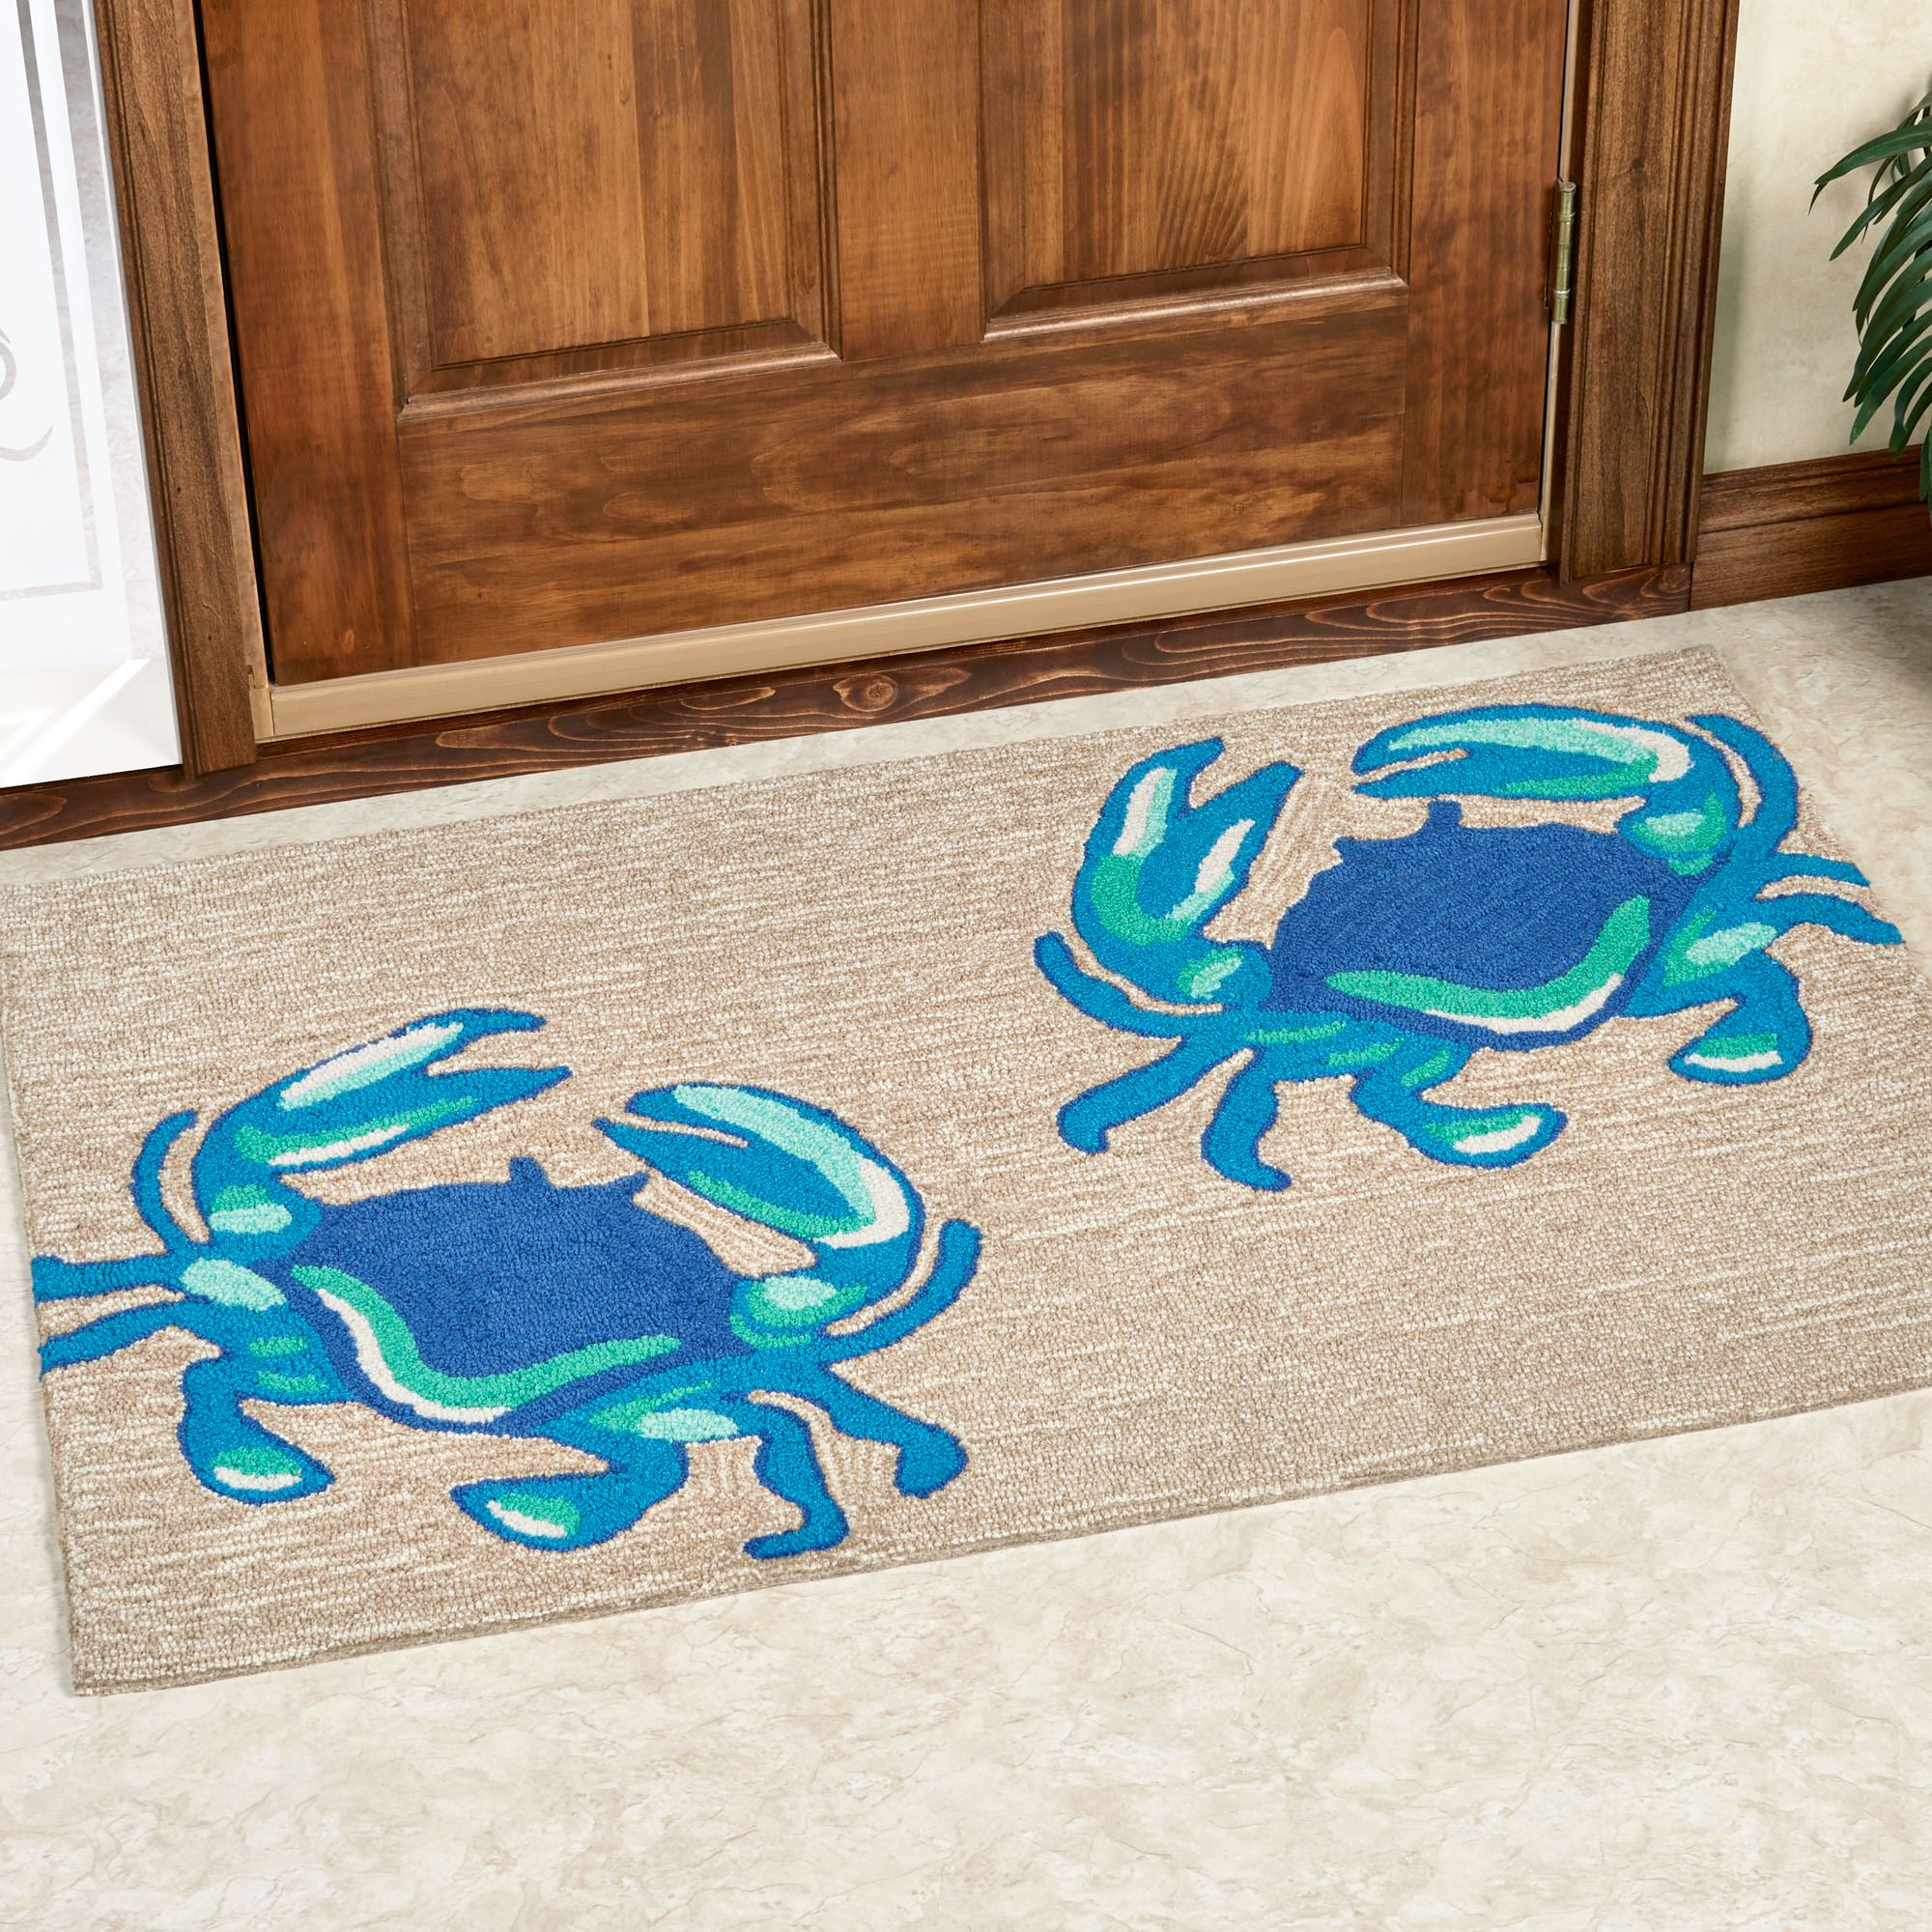 blue crabs indoor outdoor rugs. Black Bedroom Furniture Sets. Home Design Ideas